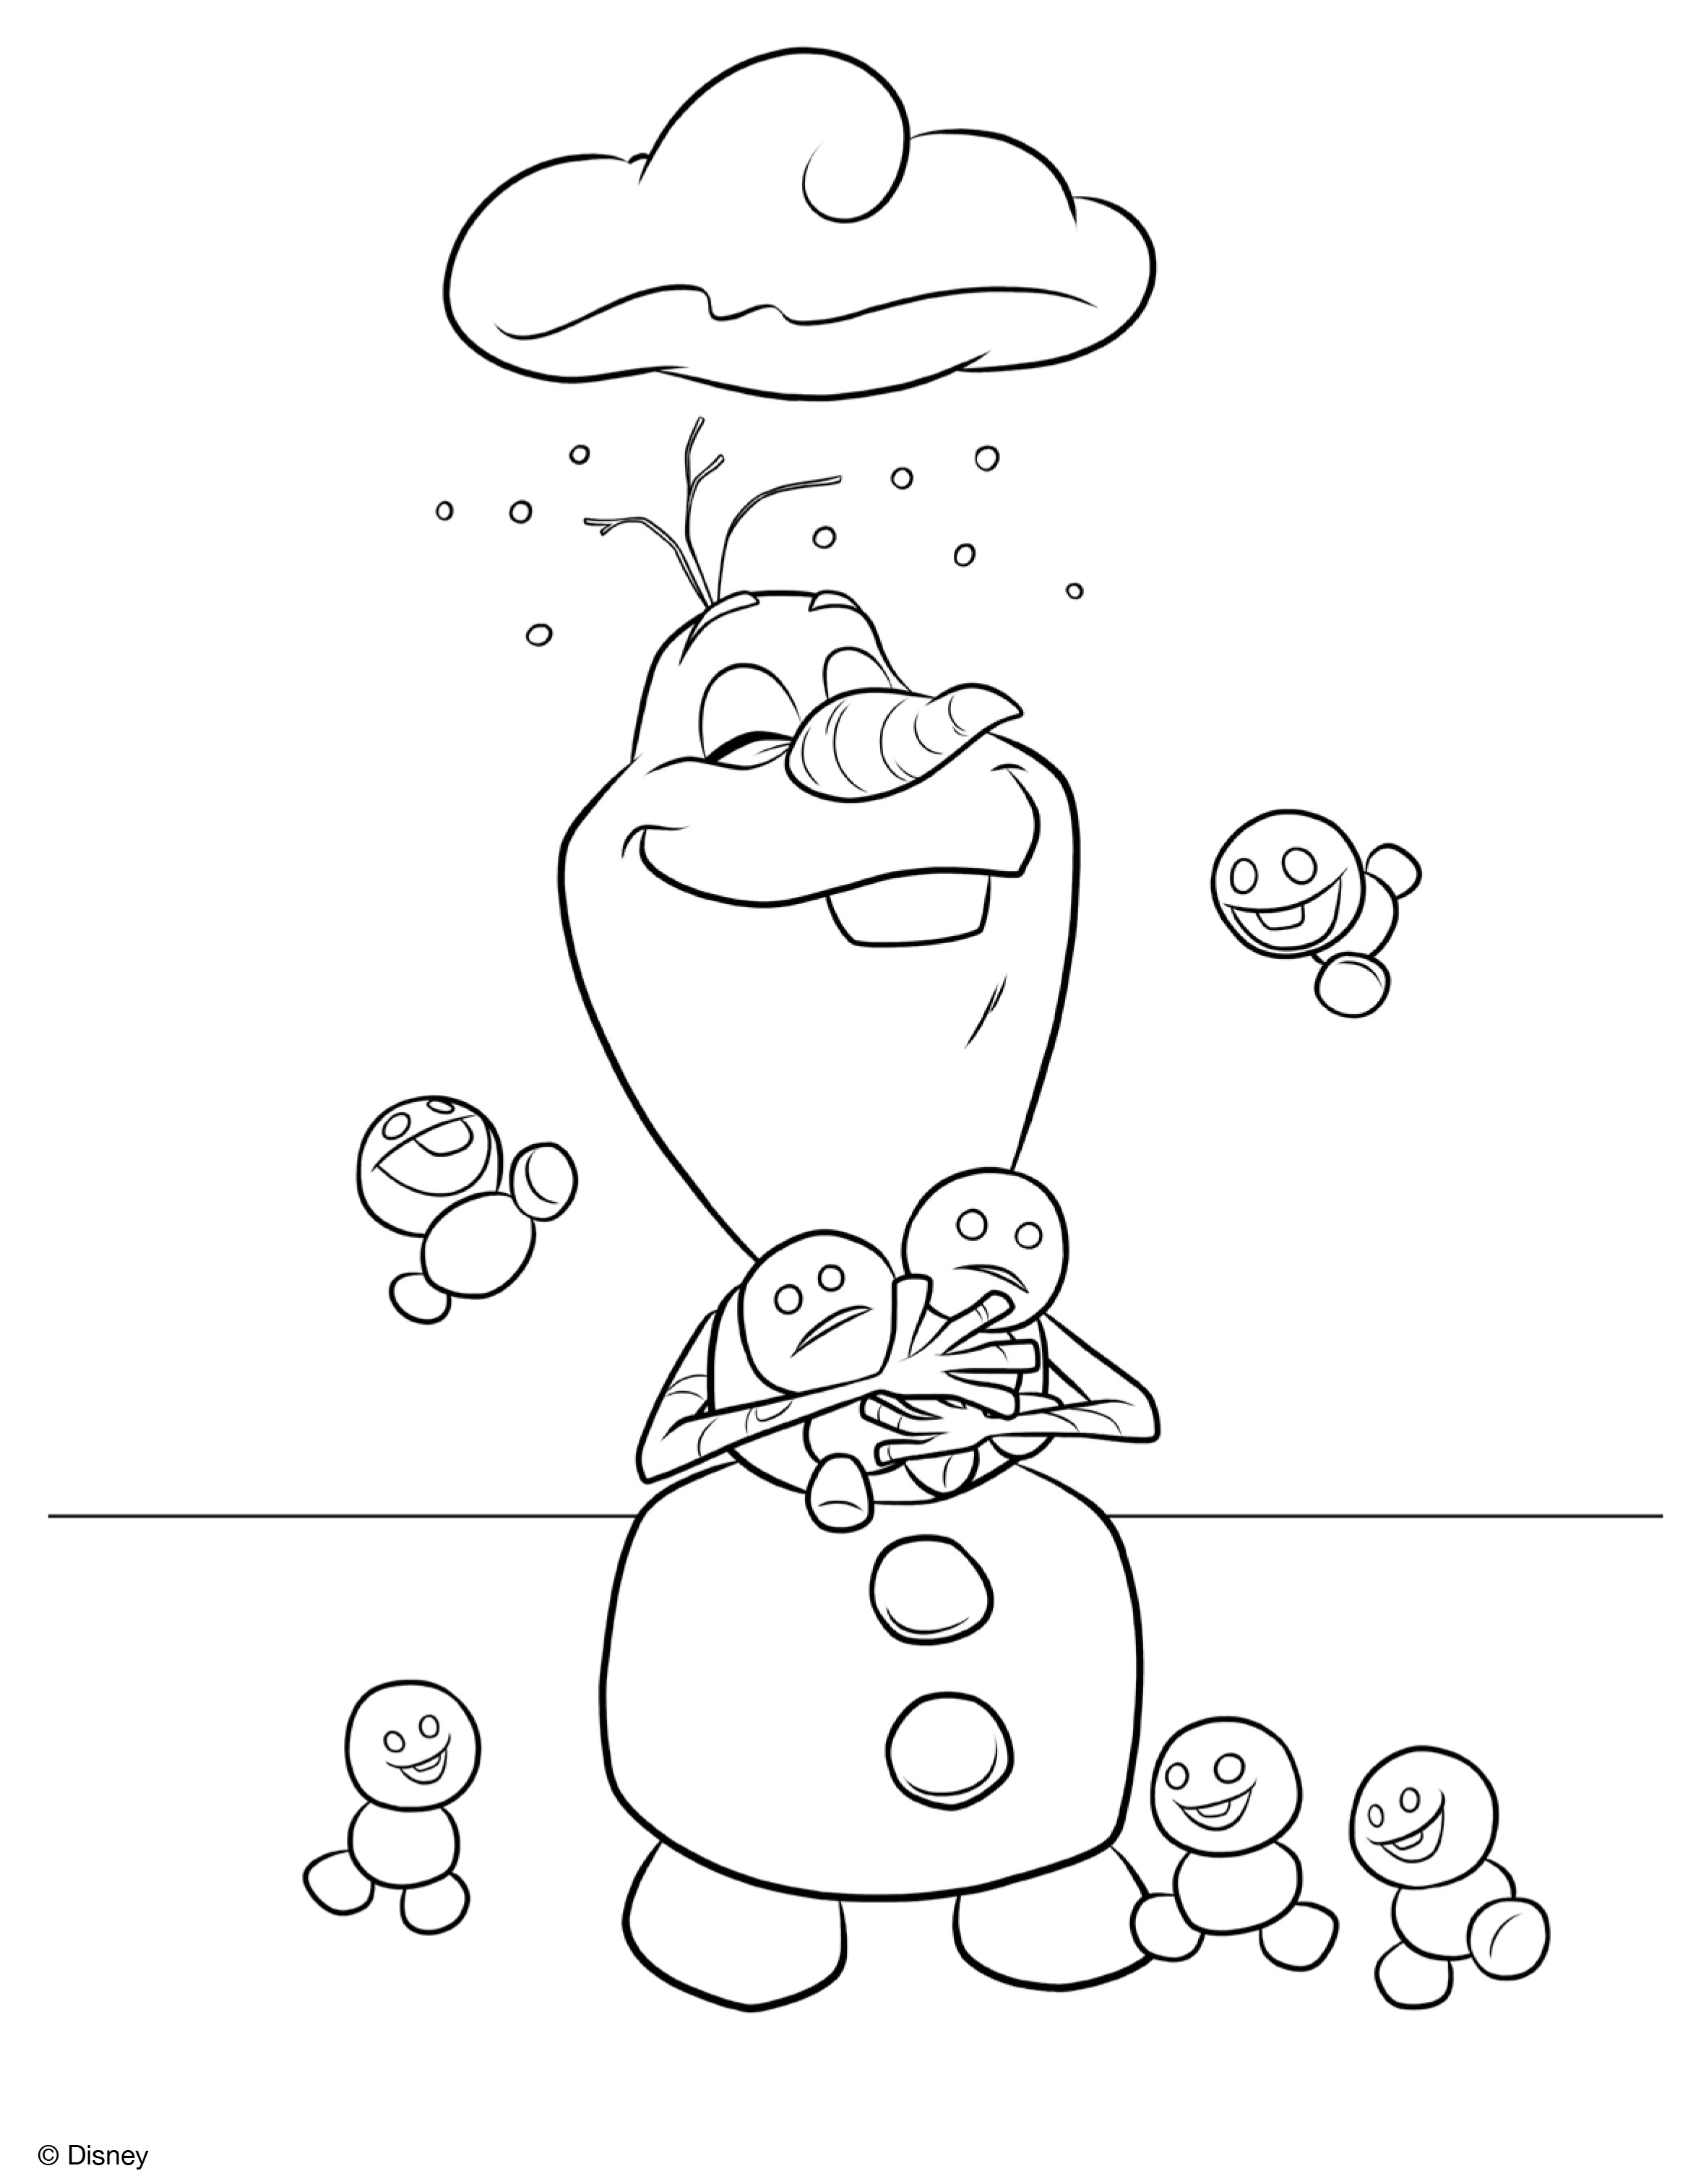 Frozen Cartoon Coloring Pages at GetColorings Free